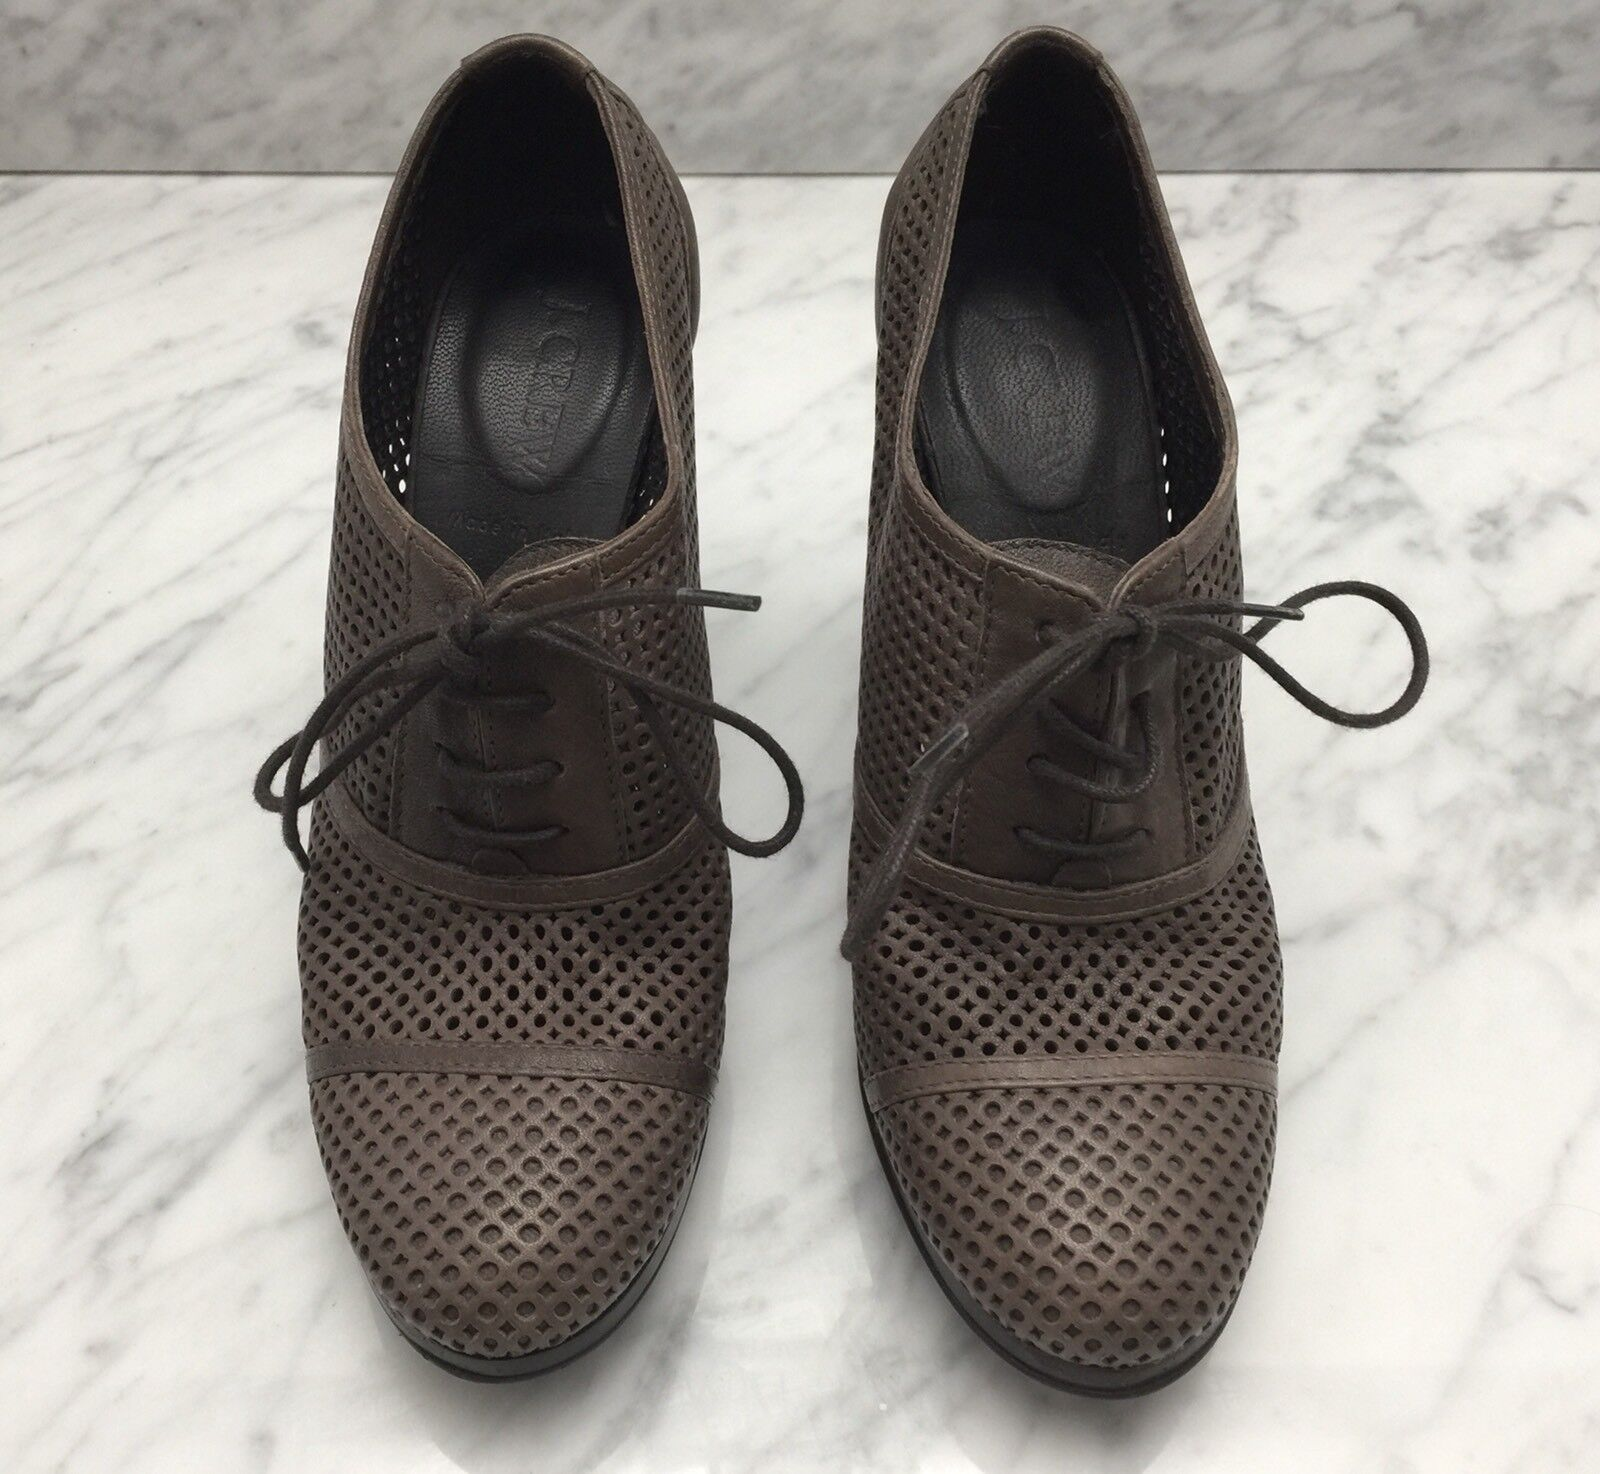 J CREW Brown Perforated Leather Lace Up Heals Sz 6M Made in